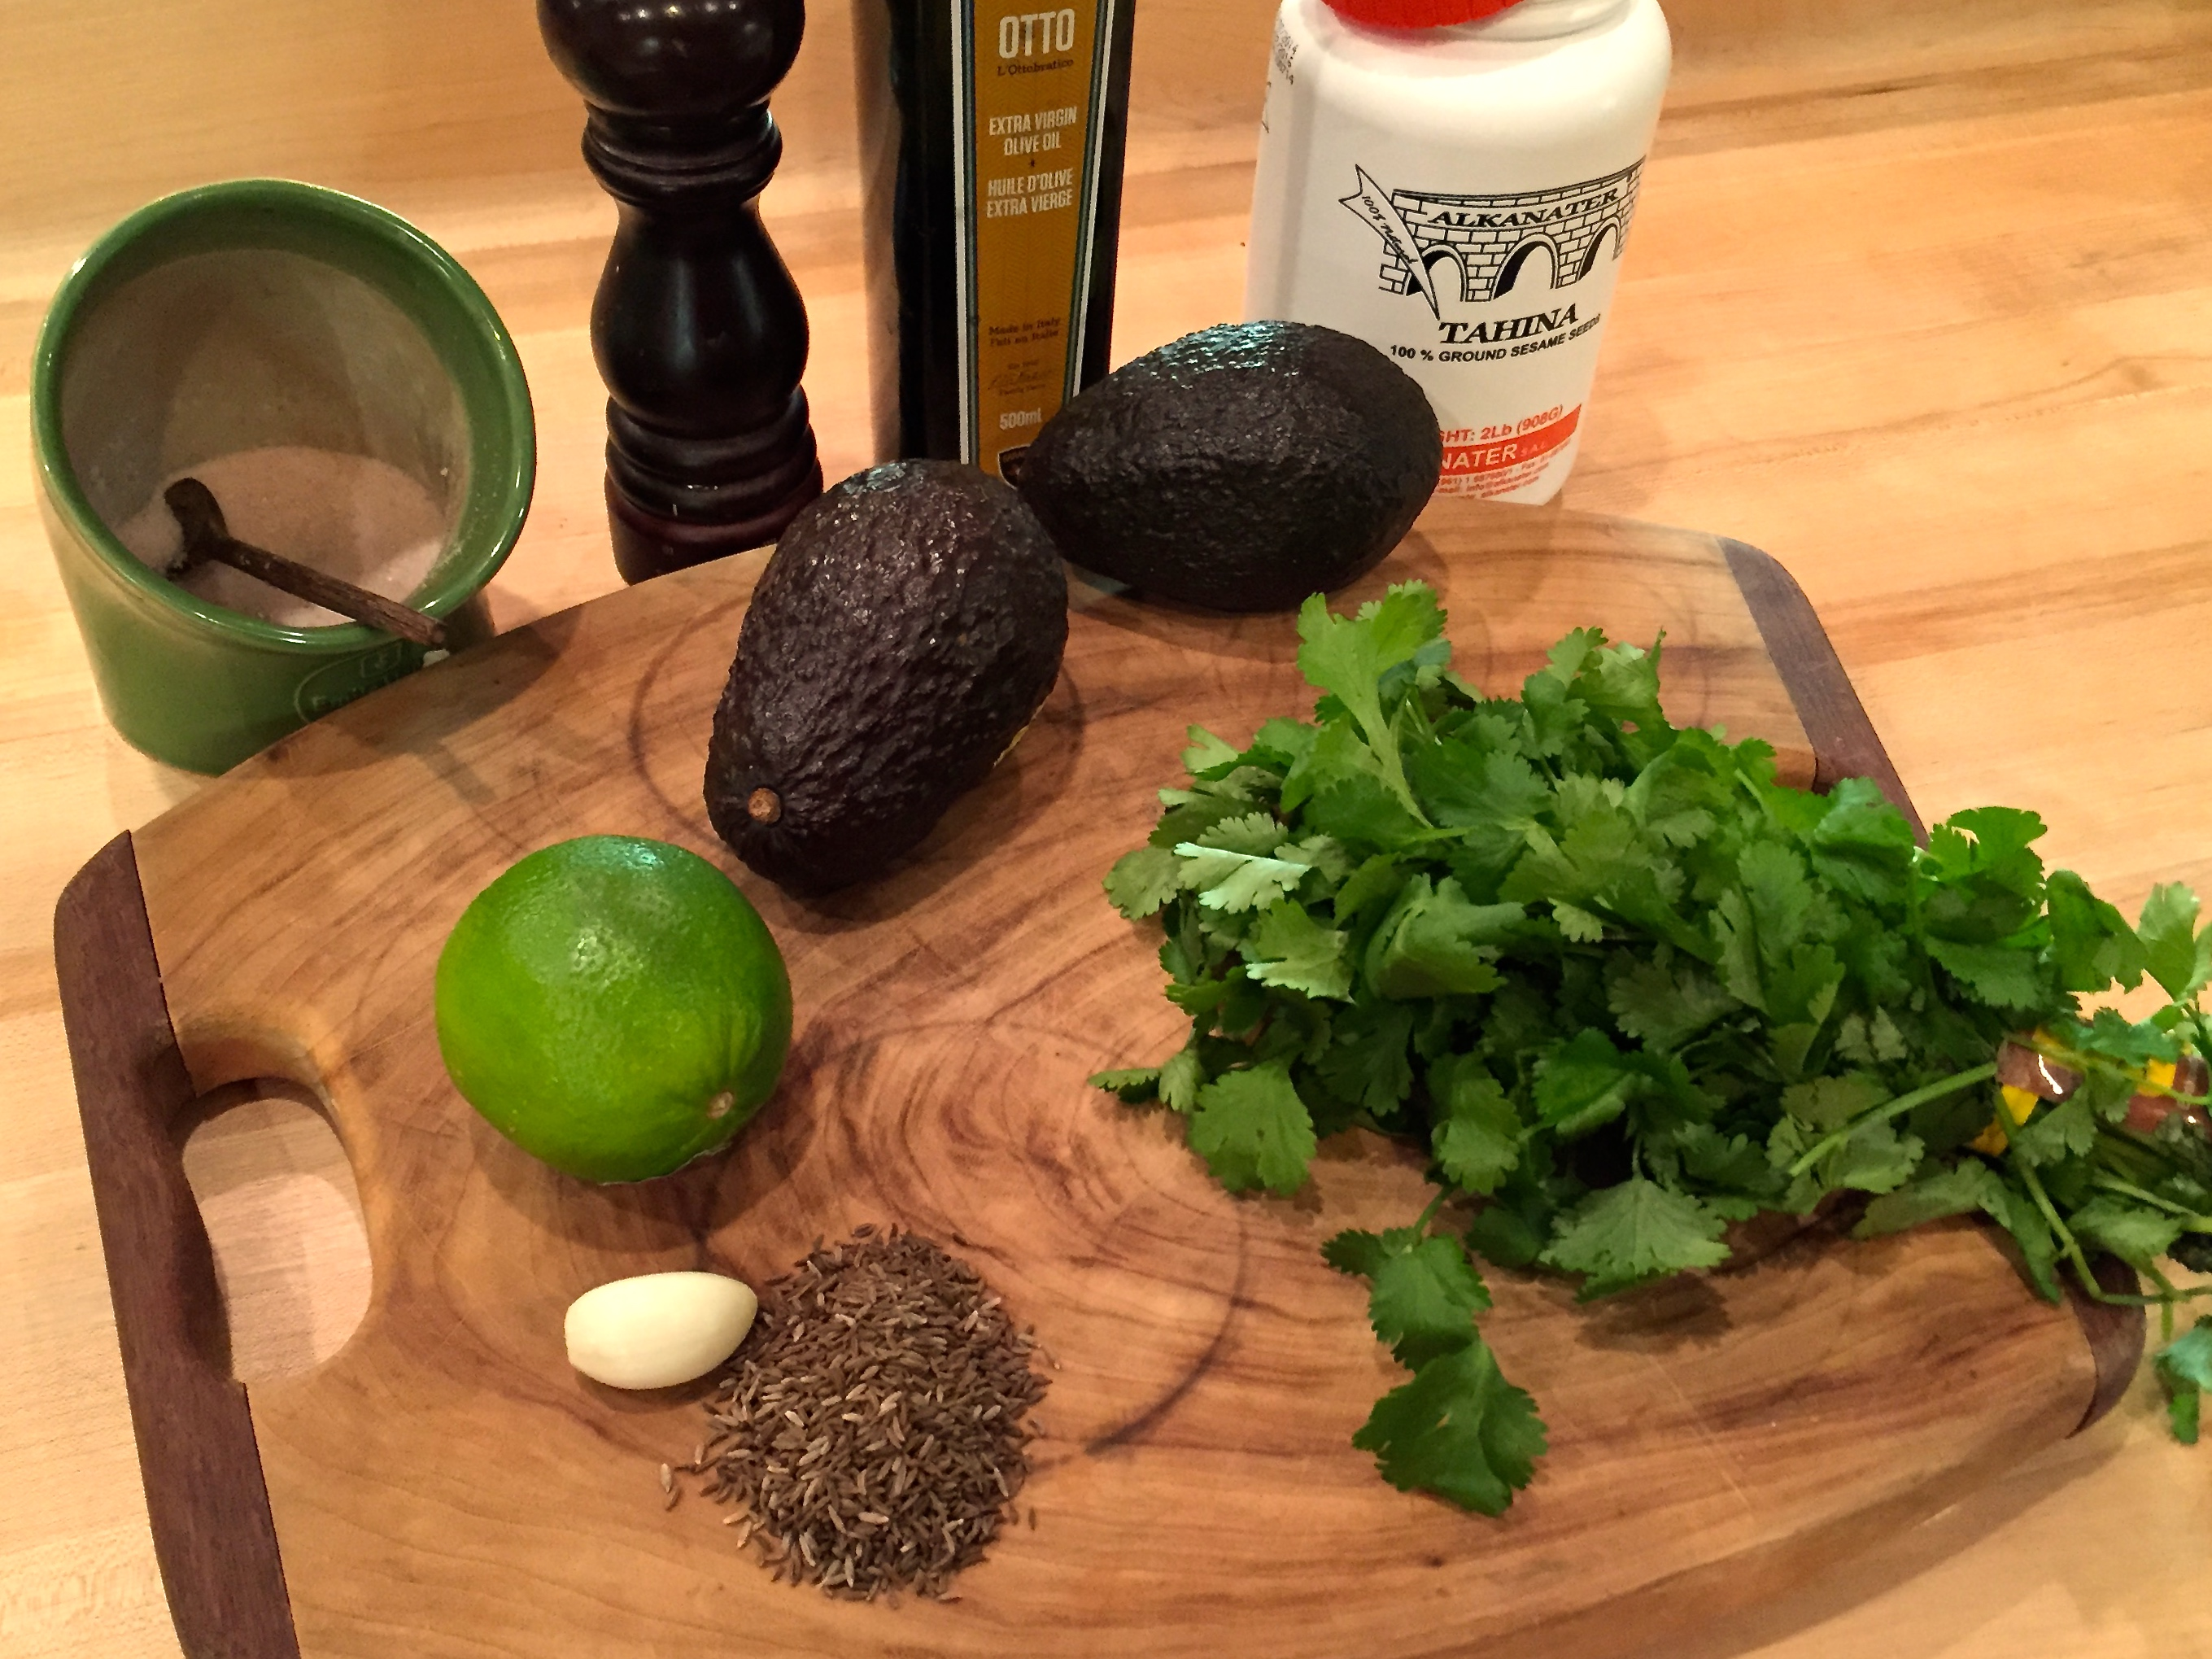 Bio-Bud mung bean and avocado hummus ingredients